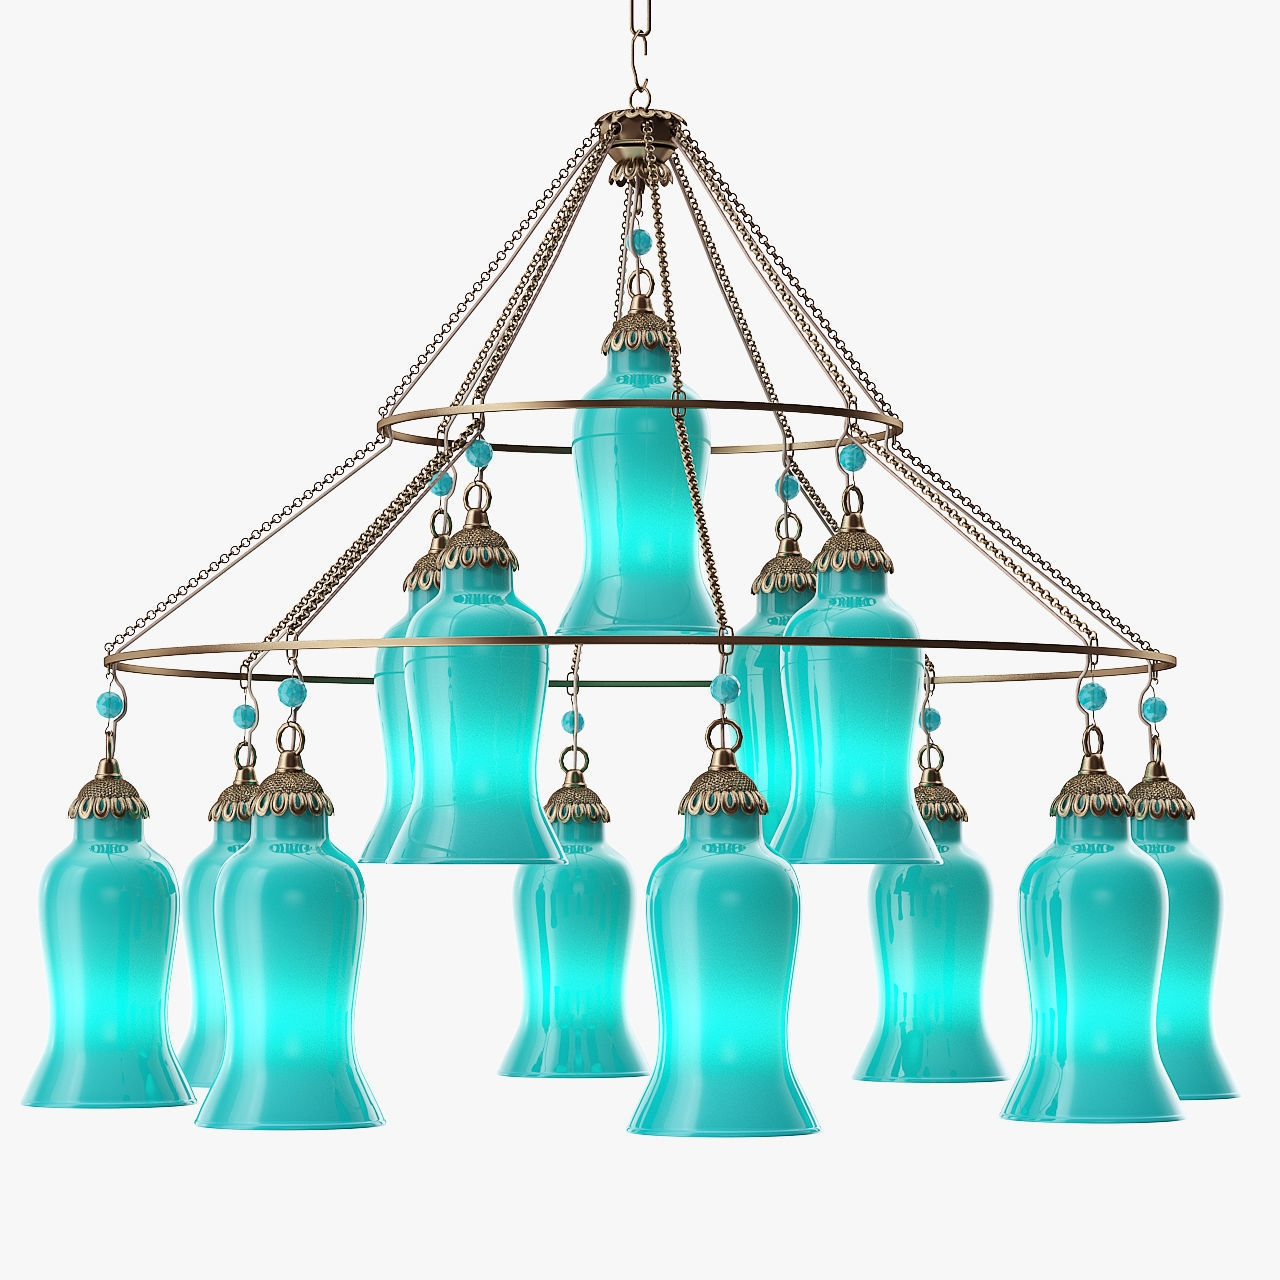 Canopy Designs Sara Glass Chandelier 3d Model Max Obj 3ds Fbx Mtl Throughout Turquoise Blue Glass Chandeliers (Image 6 of 25)